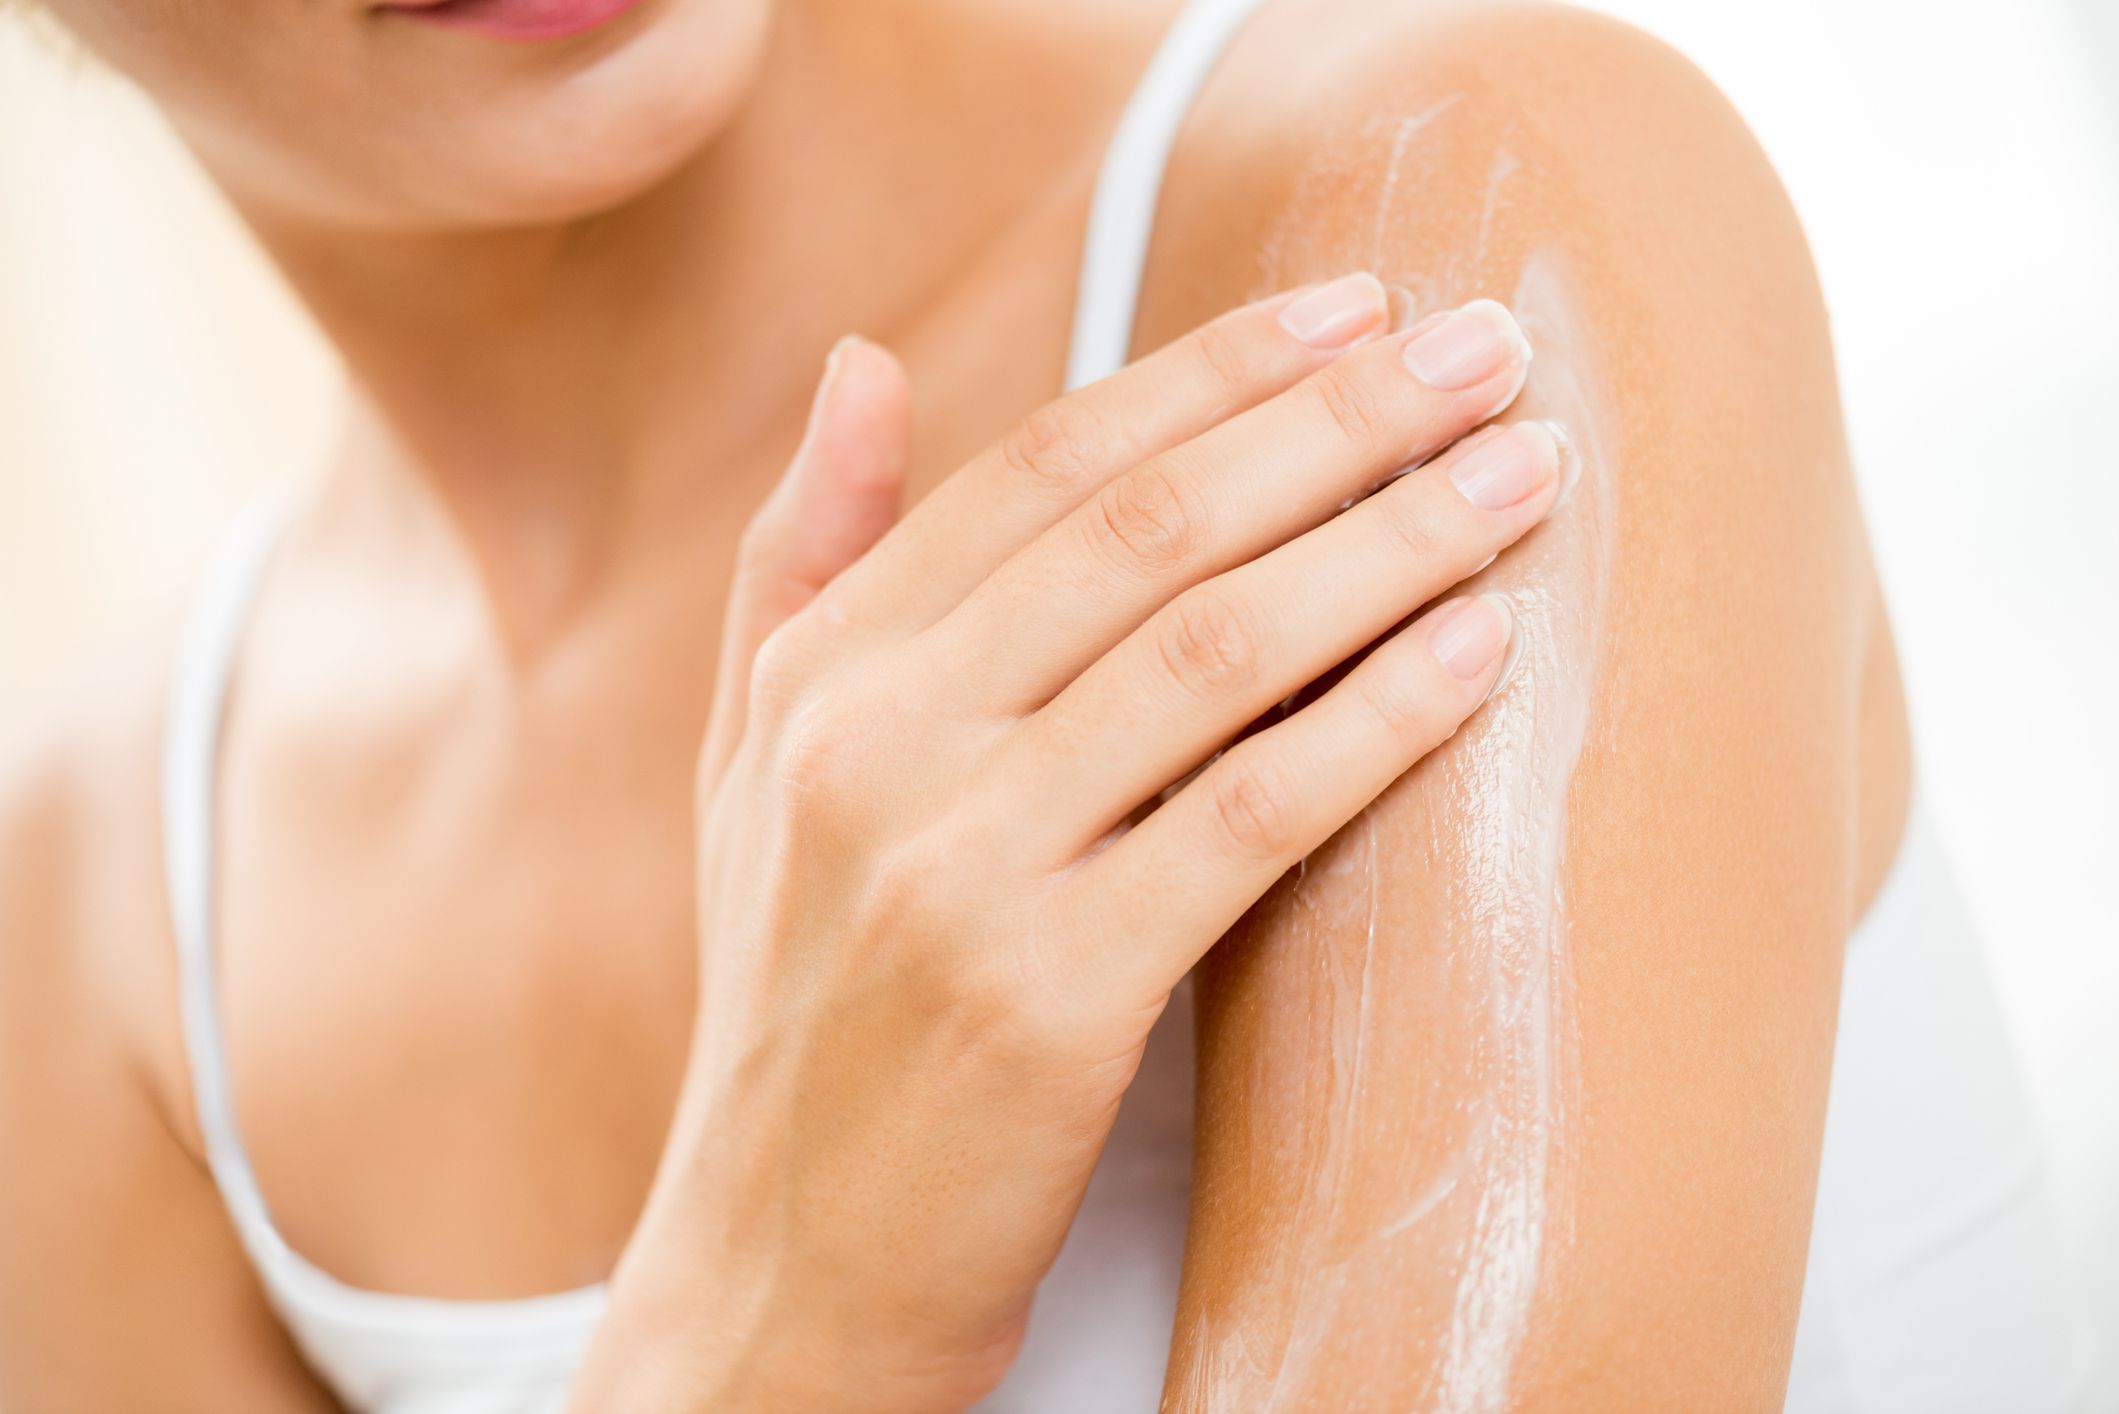 How to Get Rid of Keratosis Pilaris and Prevent It From Coming Back